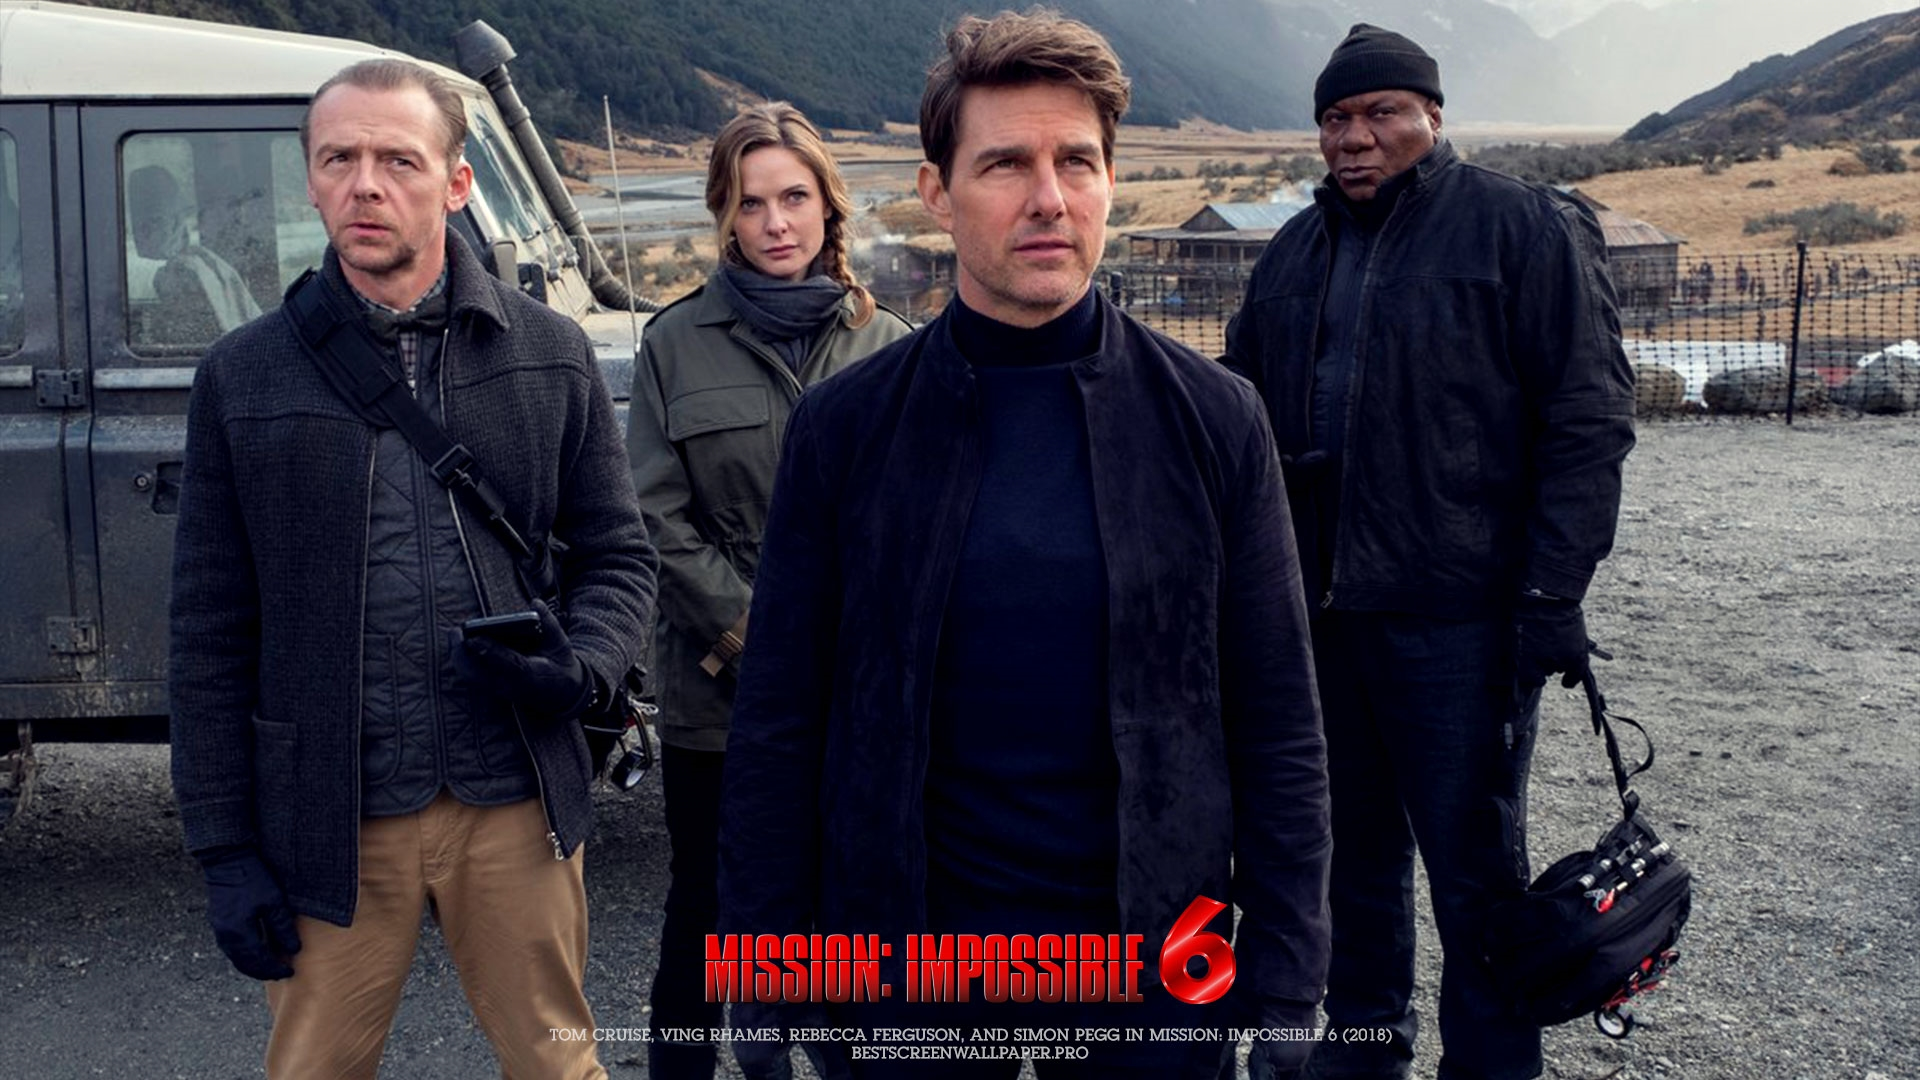 Trailer #2 của Mission: Impossible Fallout lên sóng!